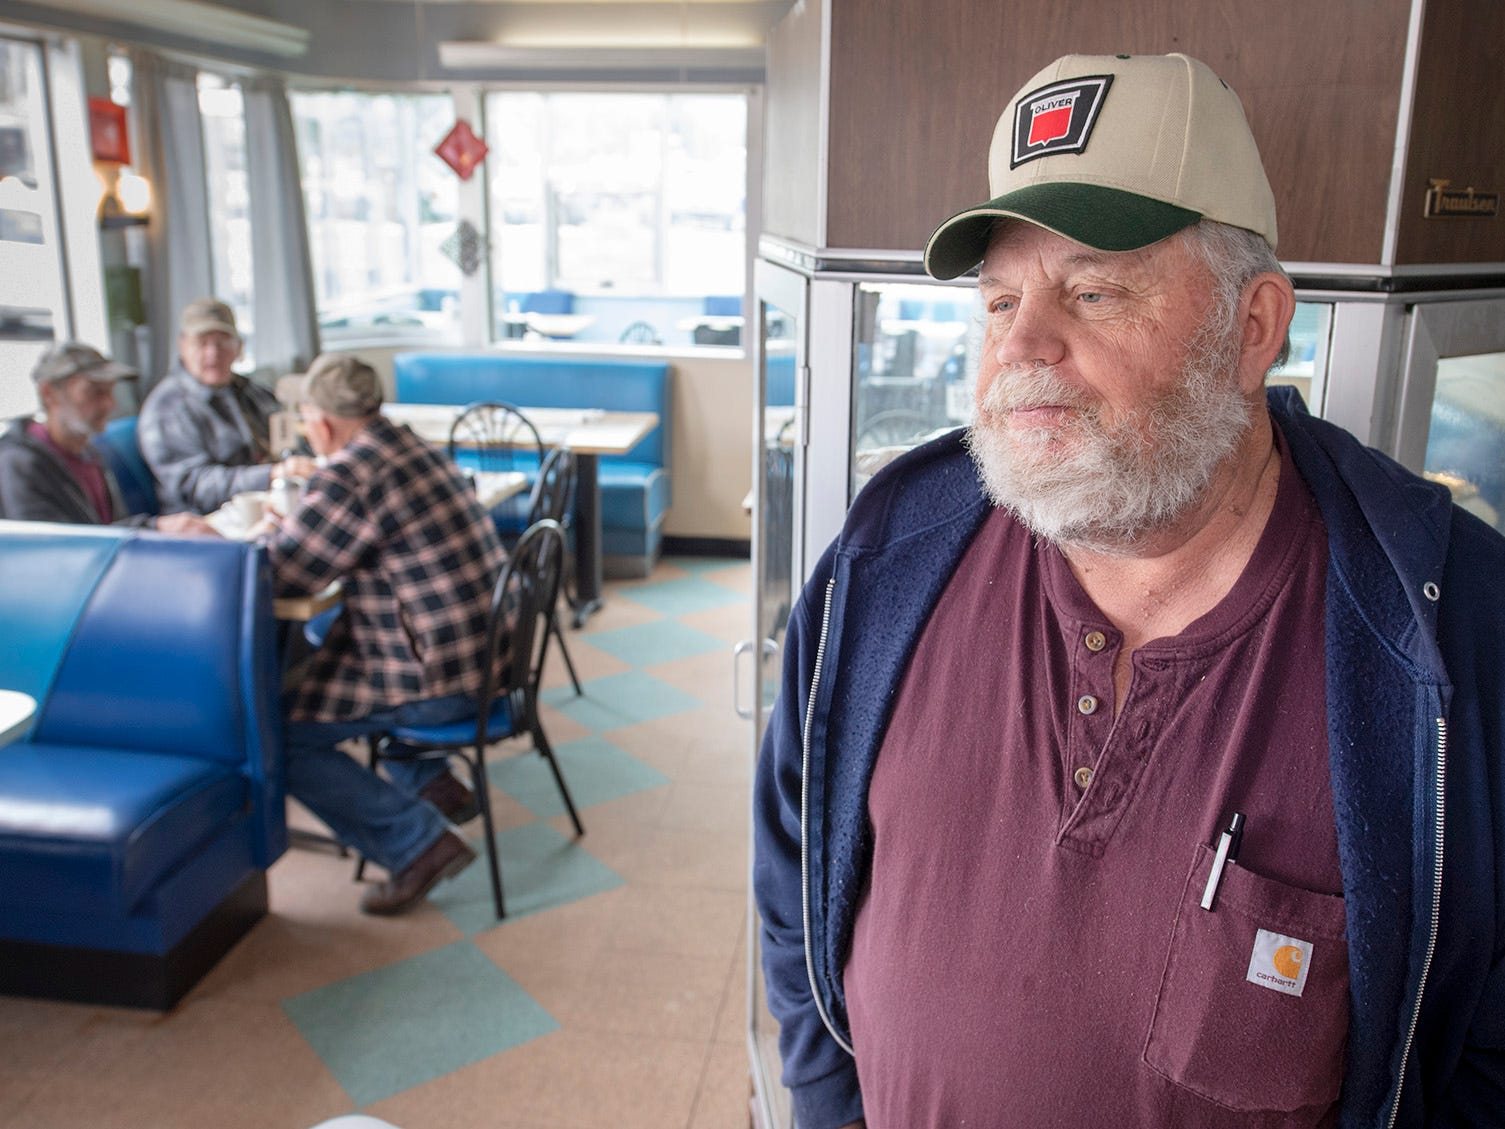 Mike Culler, a farmer from Frederick, Maryland, stopped in to Vicky's Diner with some friends on a recent morning. They came to York County to look at farm equipment Wednesday February 6, 2019.